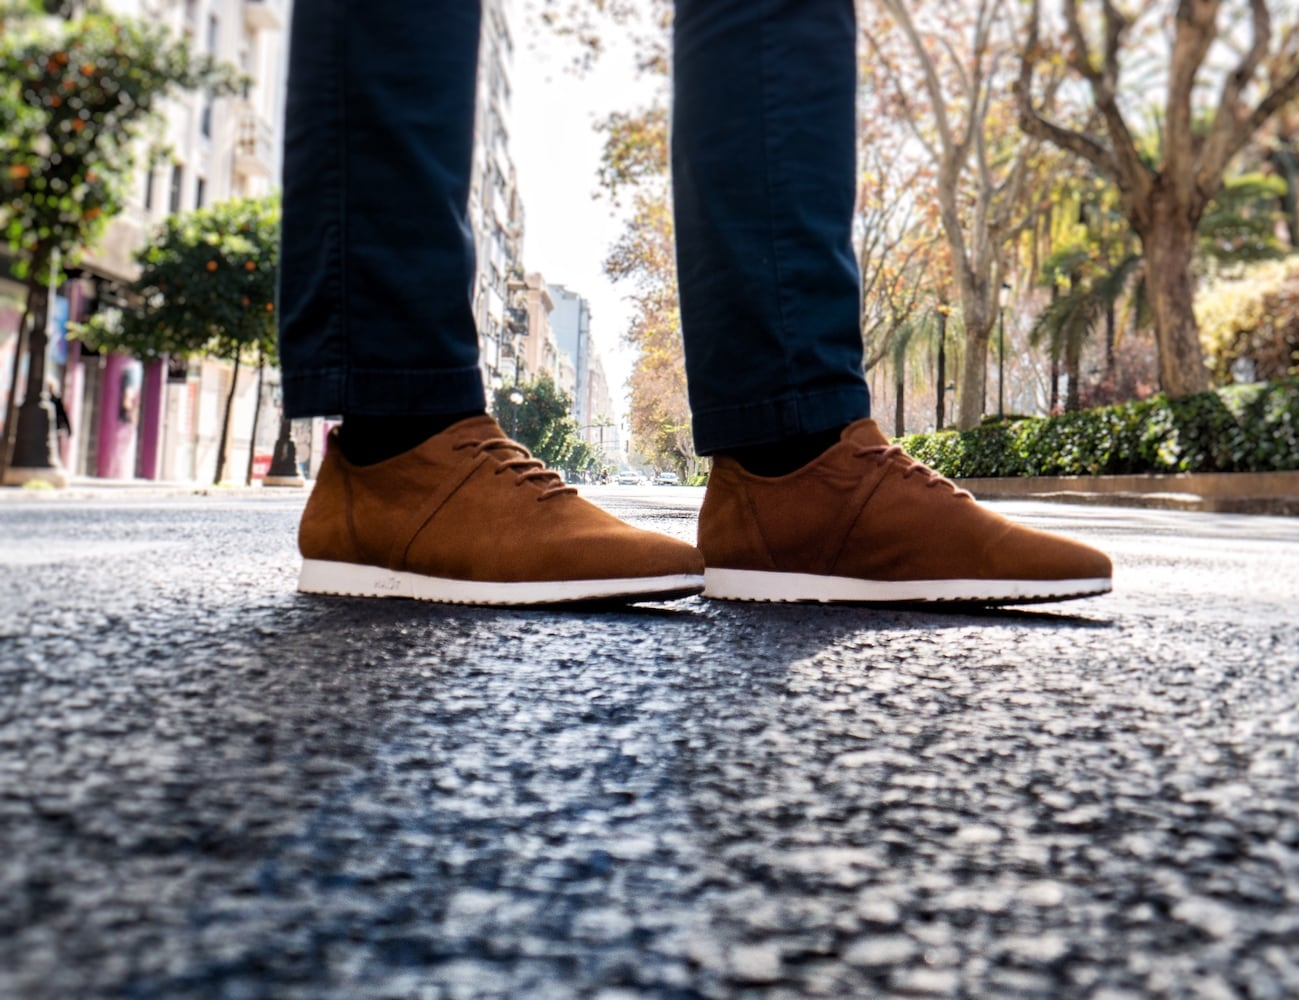 HAŪT Urban Sustainable Shoes are incredibly eco-friendly footwear